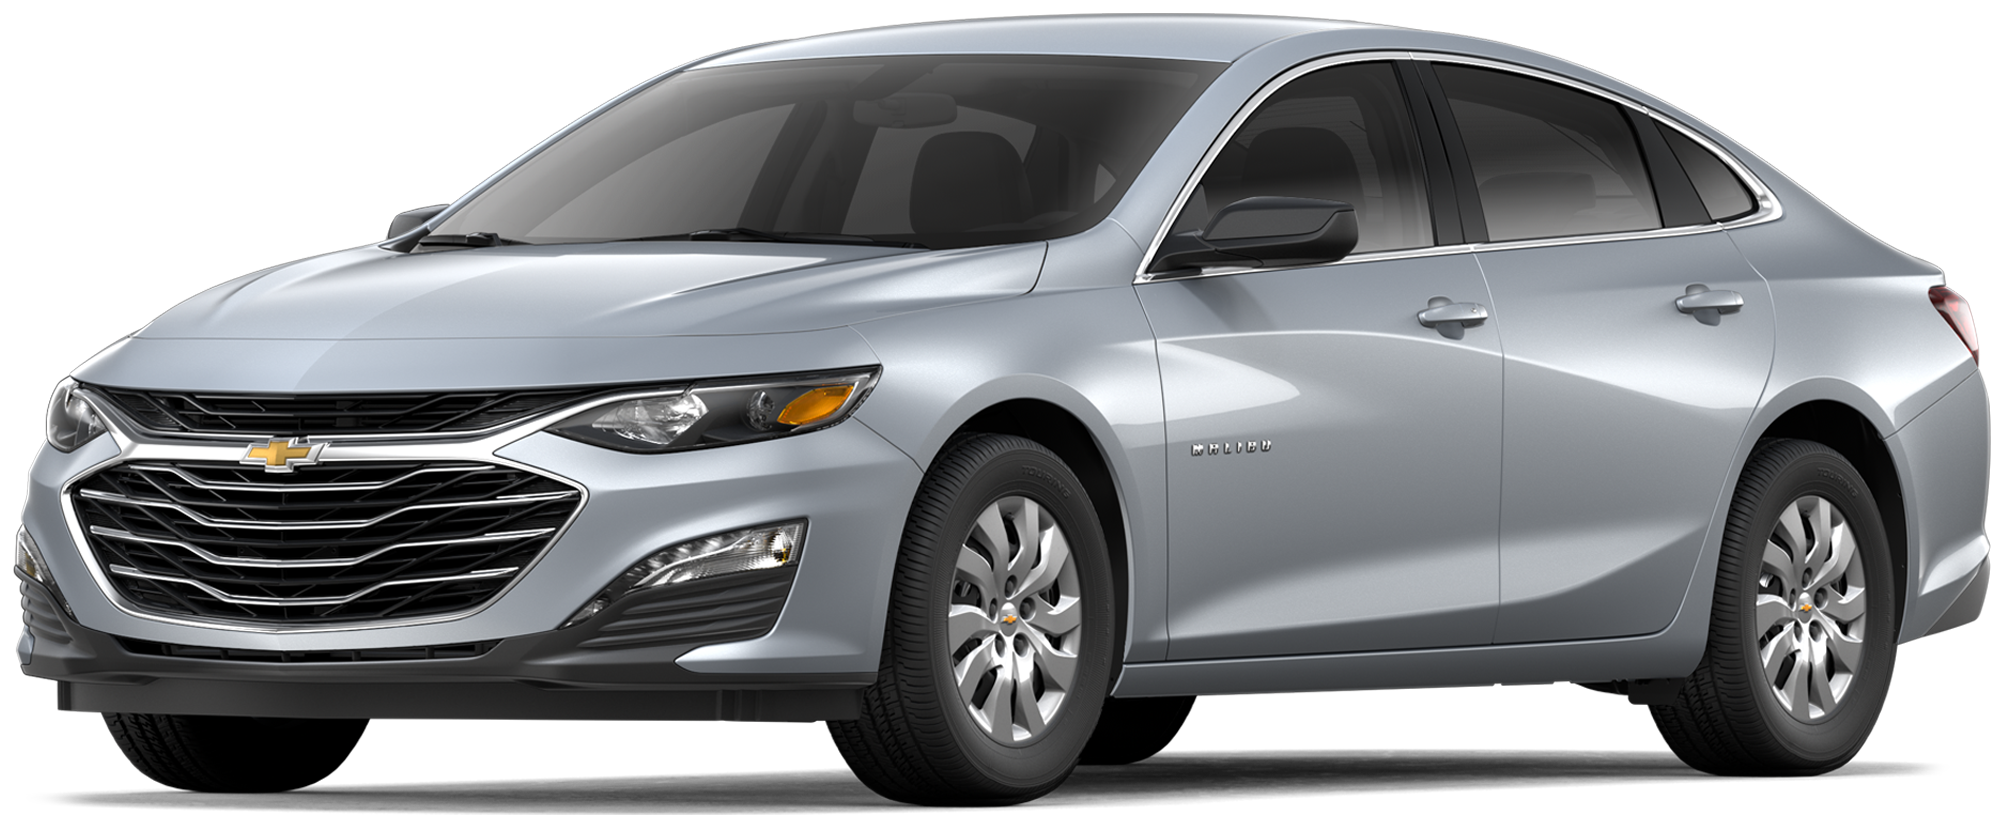 2020 Chevrolet Malibu Incentives, Specials & Offers in ...